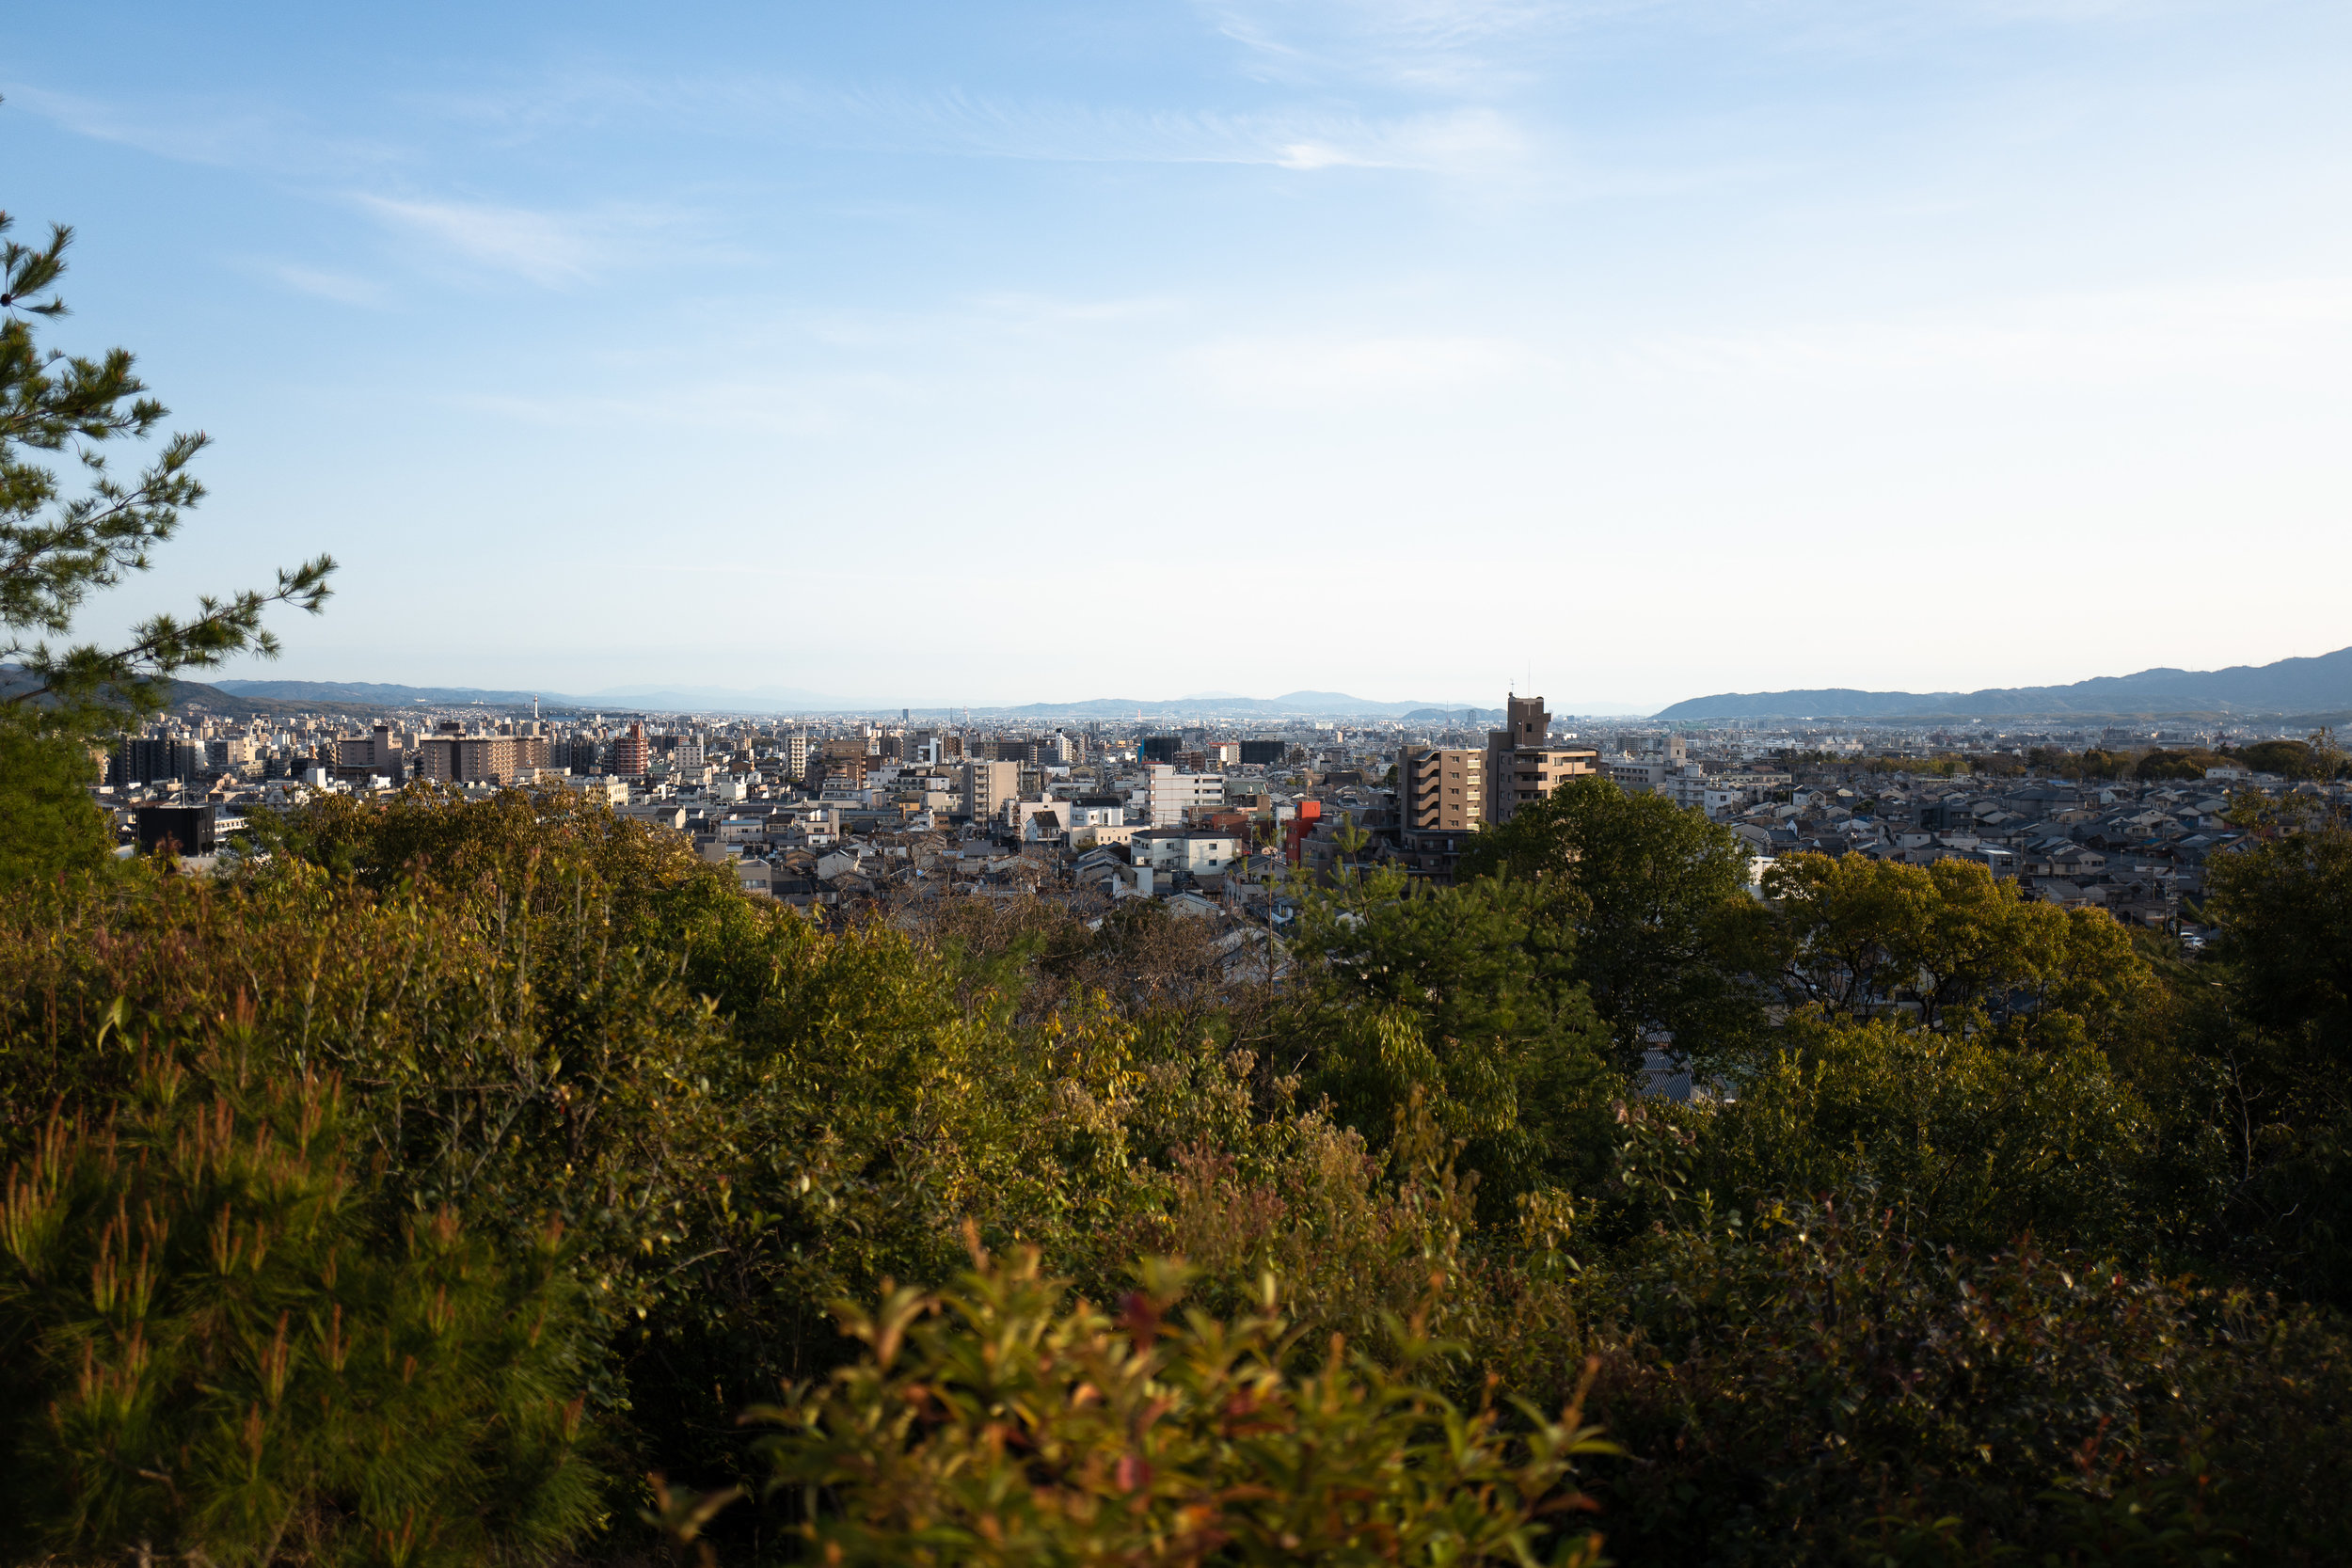 View of Kyoto from Funaoka. Look closely enough at the left side and you'll spot Kyoto Tower.